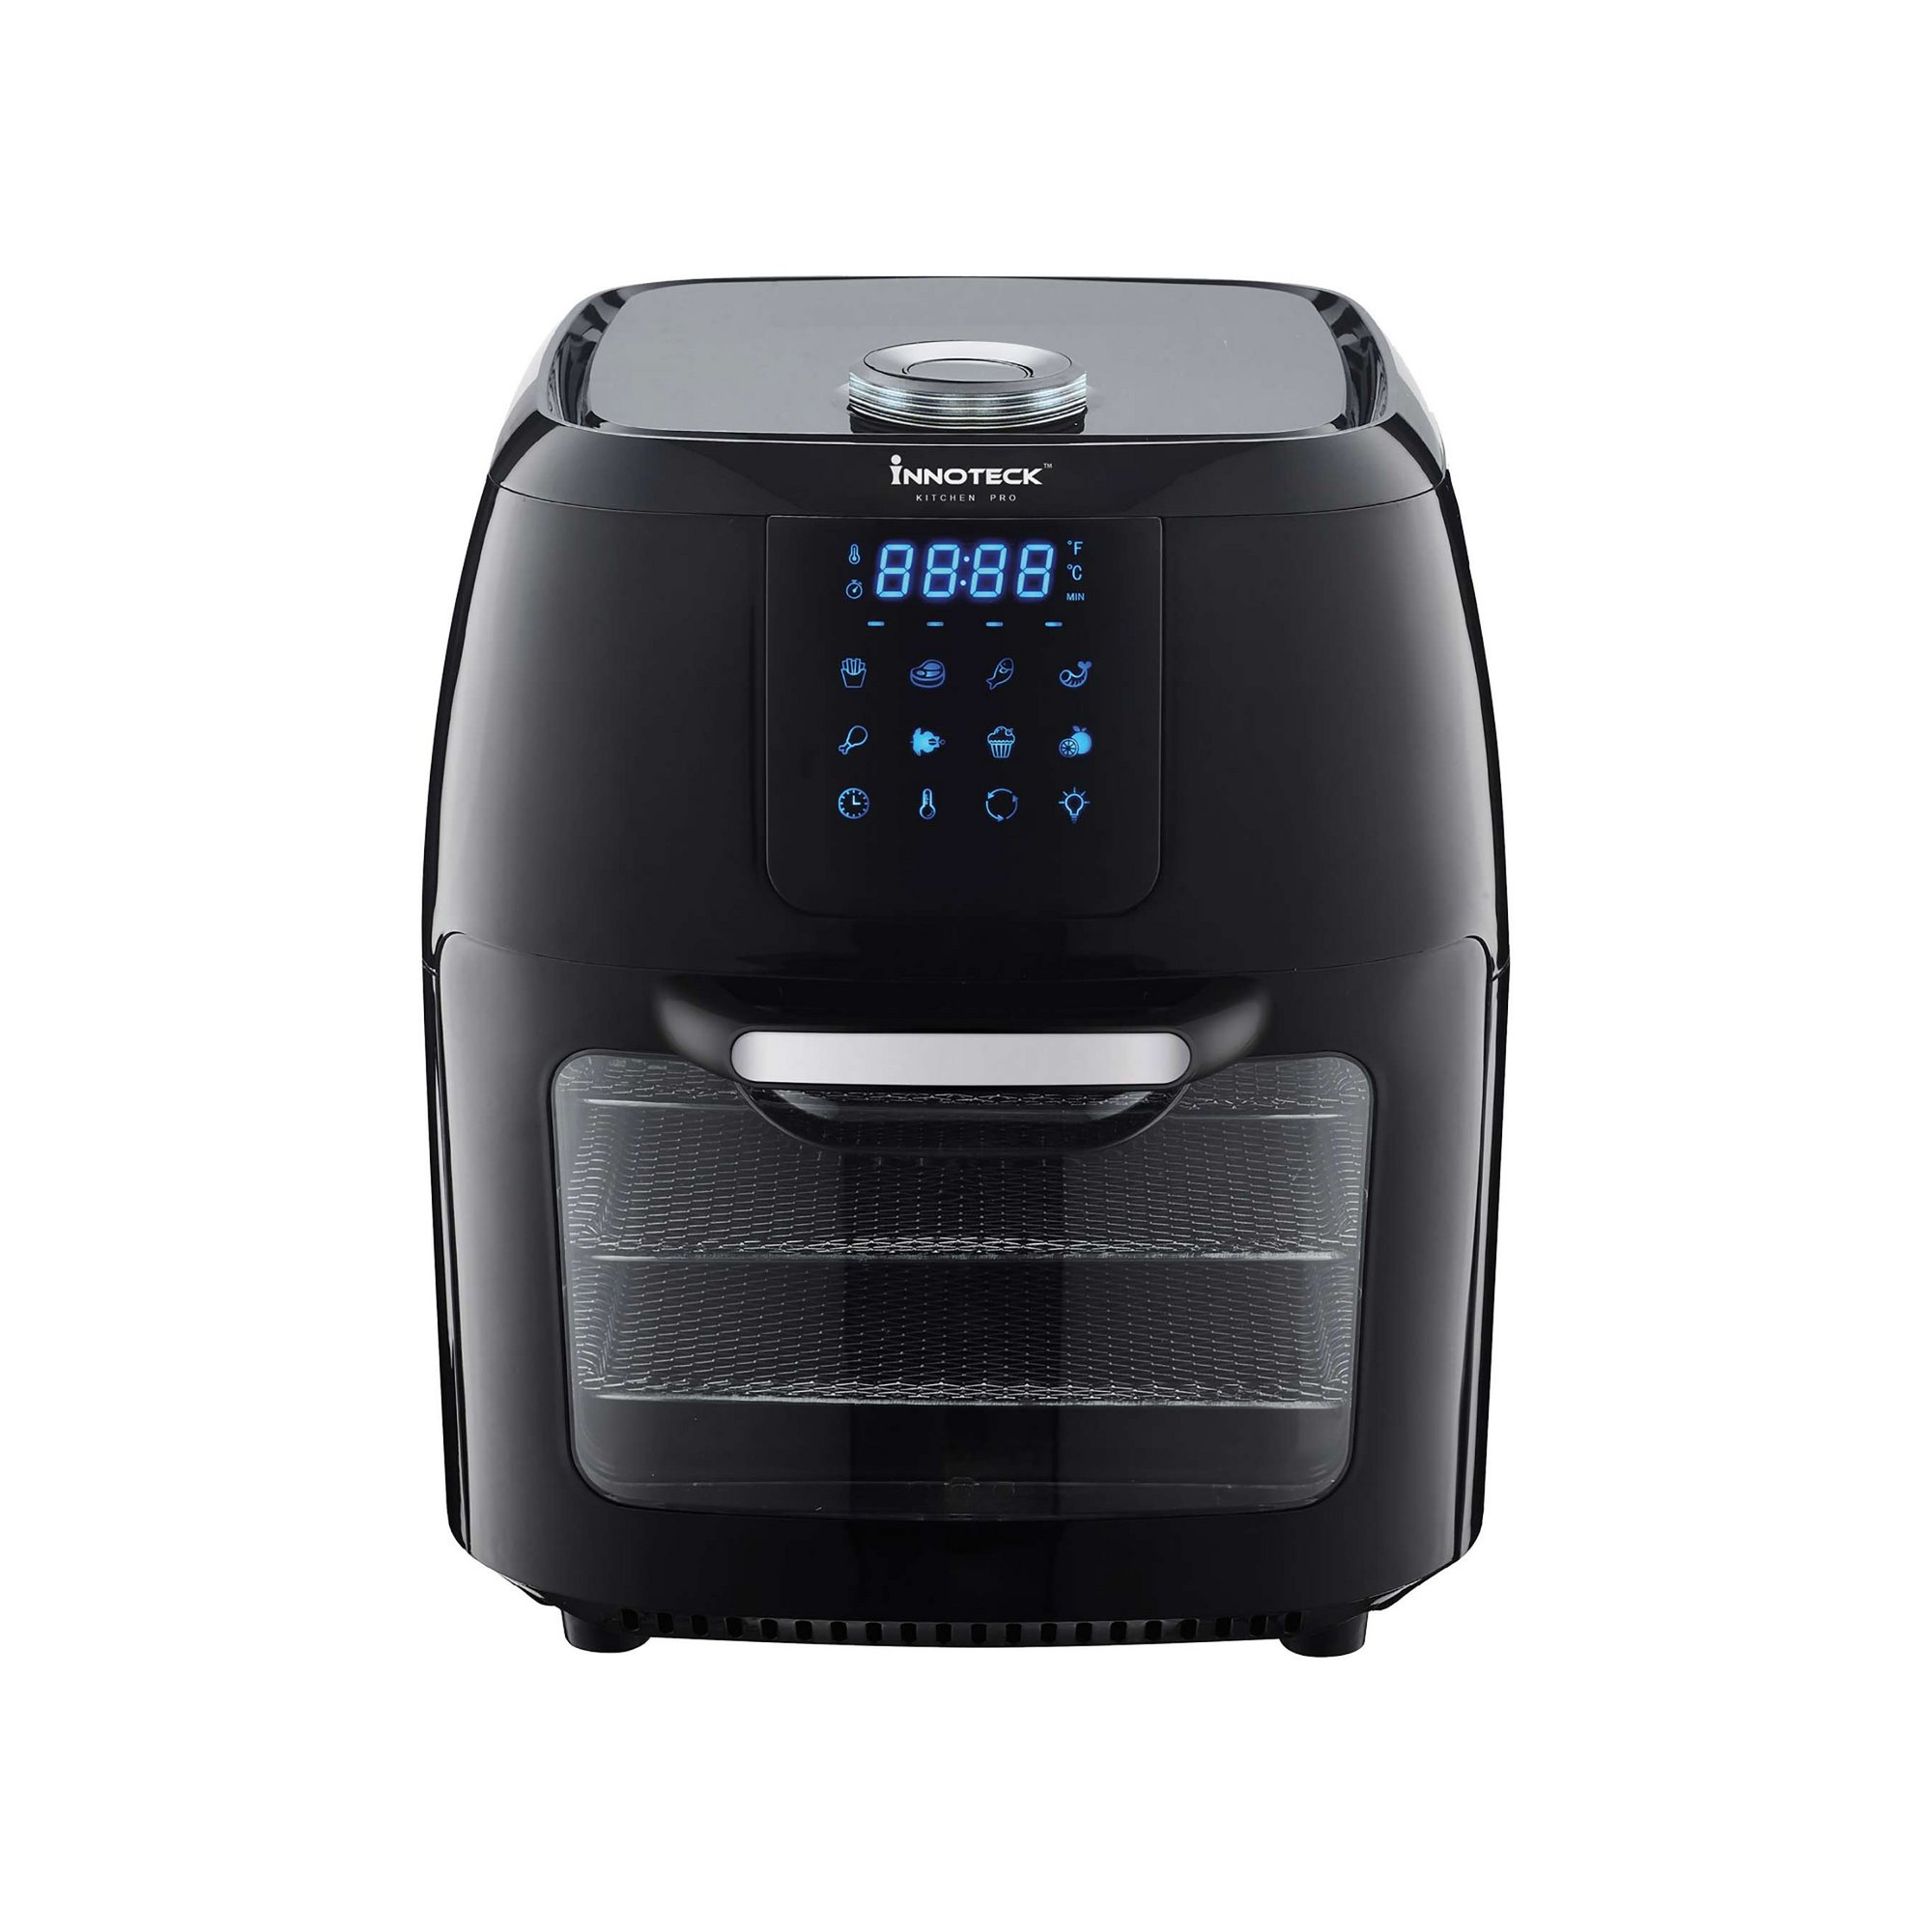 Image of Innoteck Kitchen Pro 12 Litre Air Fryer Oven